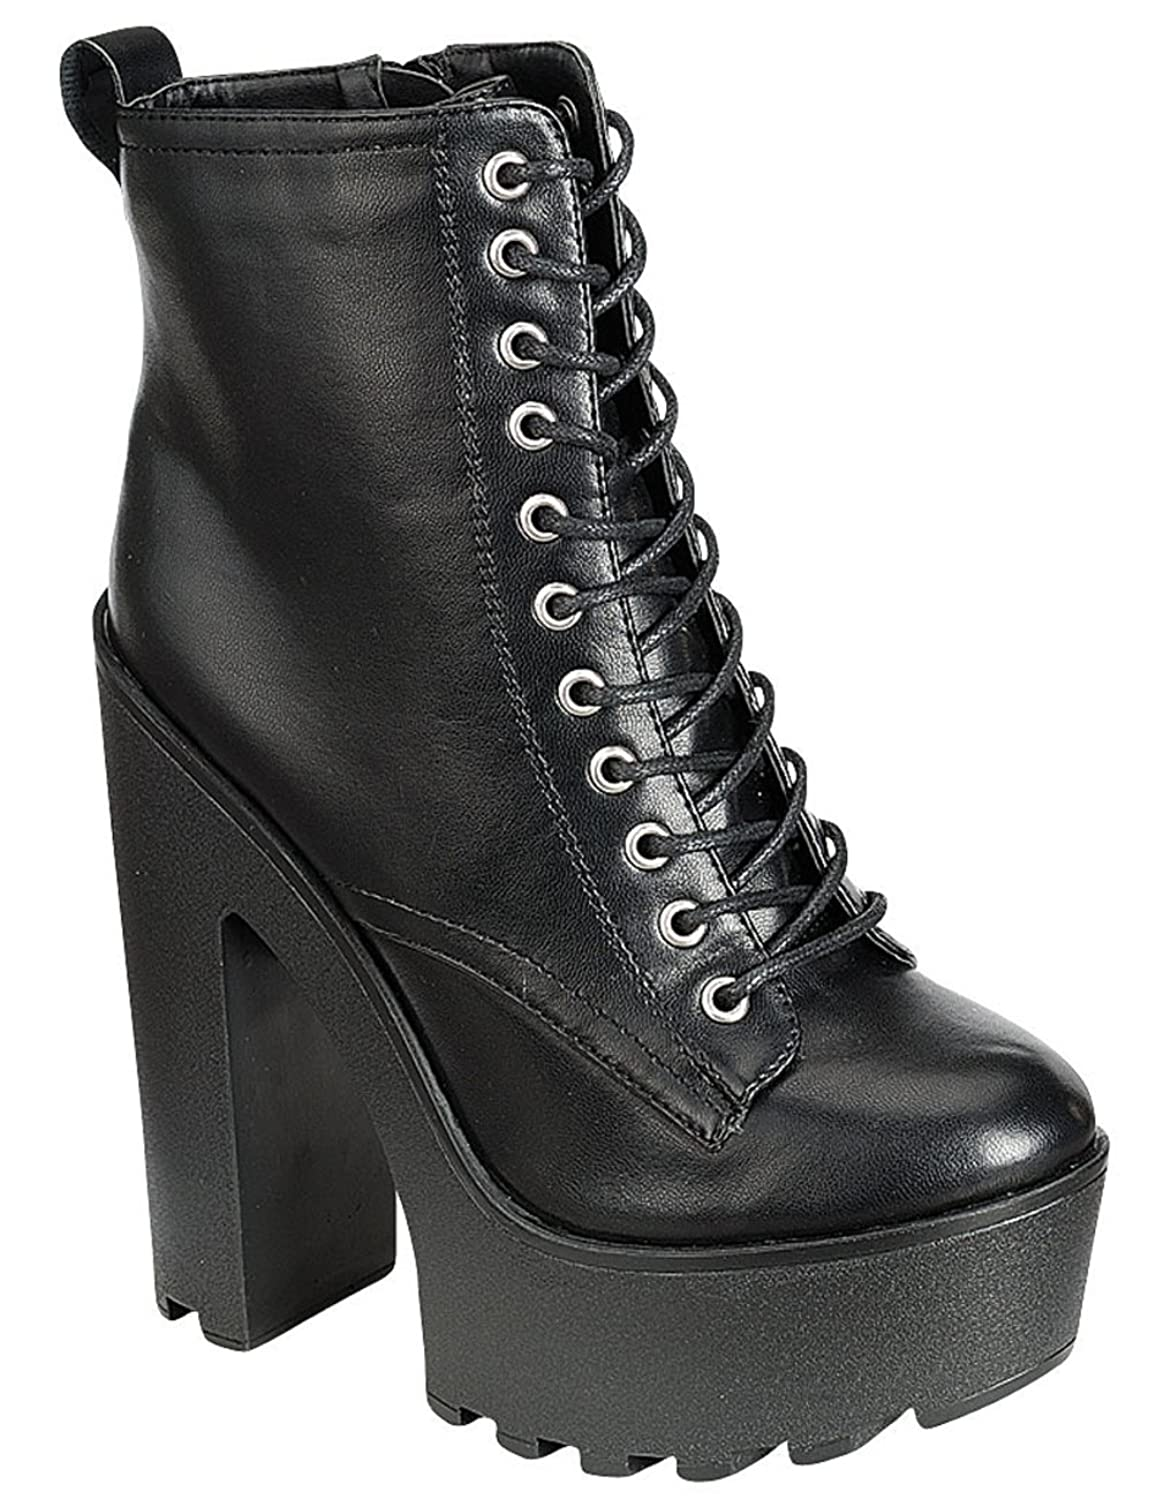 info for 7ef2d f0283 Breckelle s Shoes Breckelles Jamie-11 Chunky Heel Platform Booties durable  service